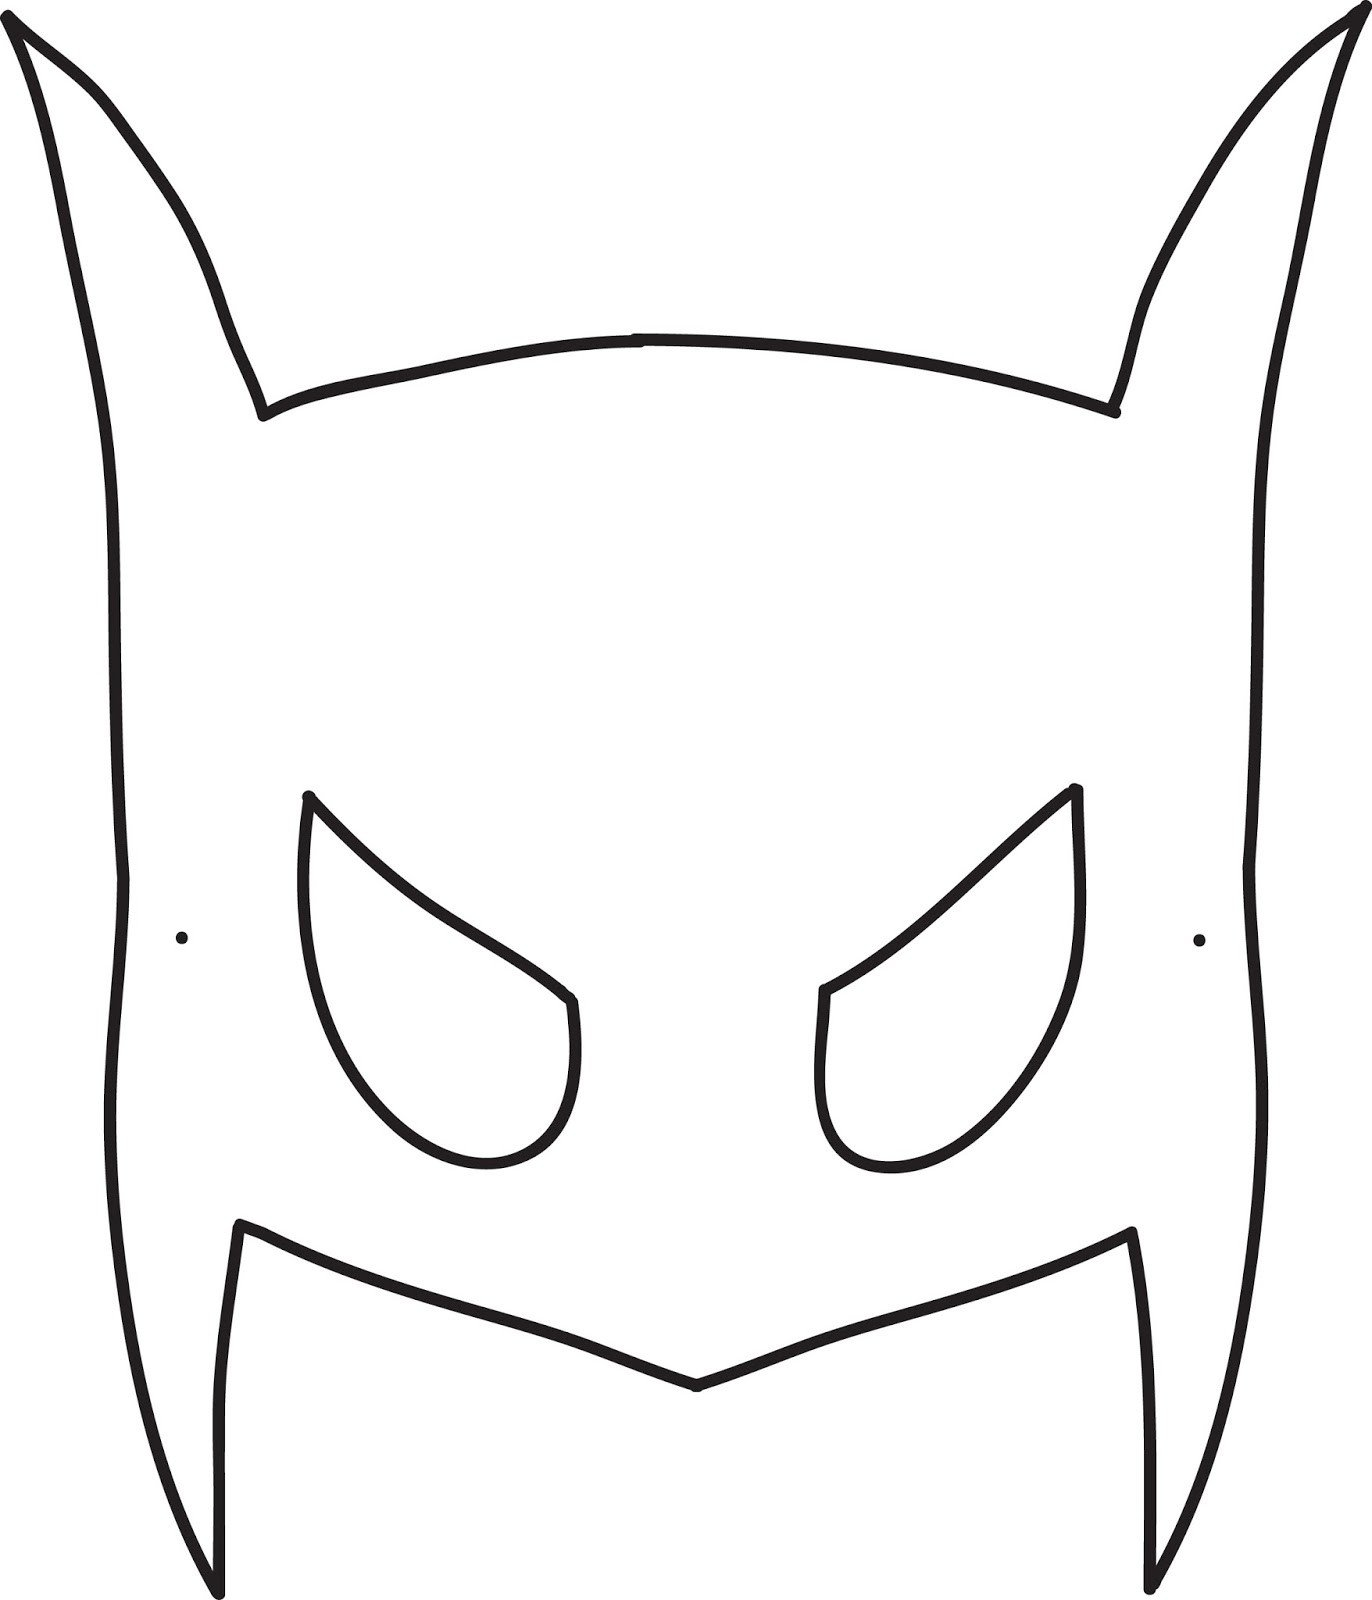 Spa Mask Template Batman Mask